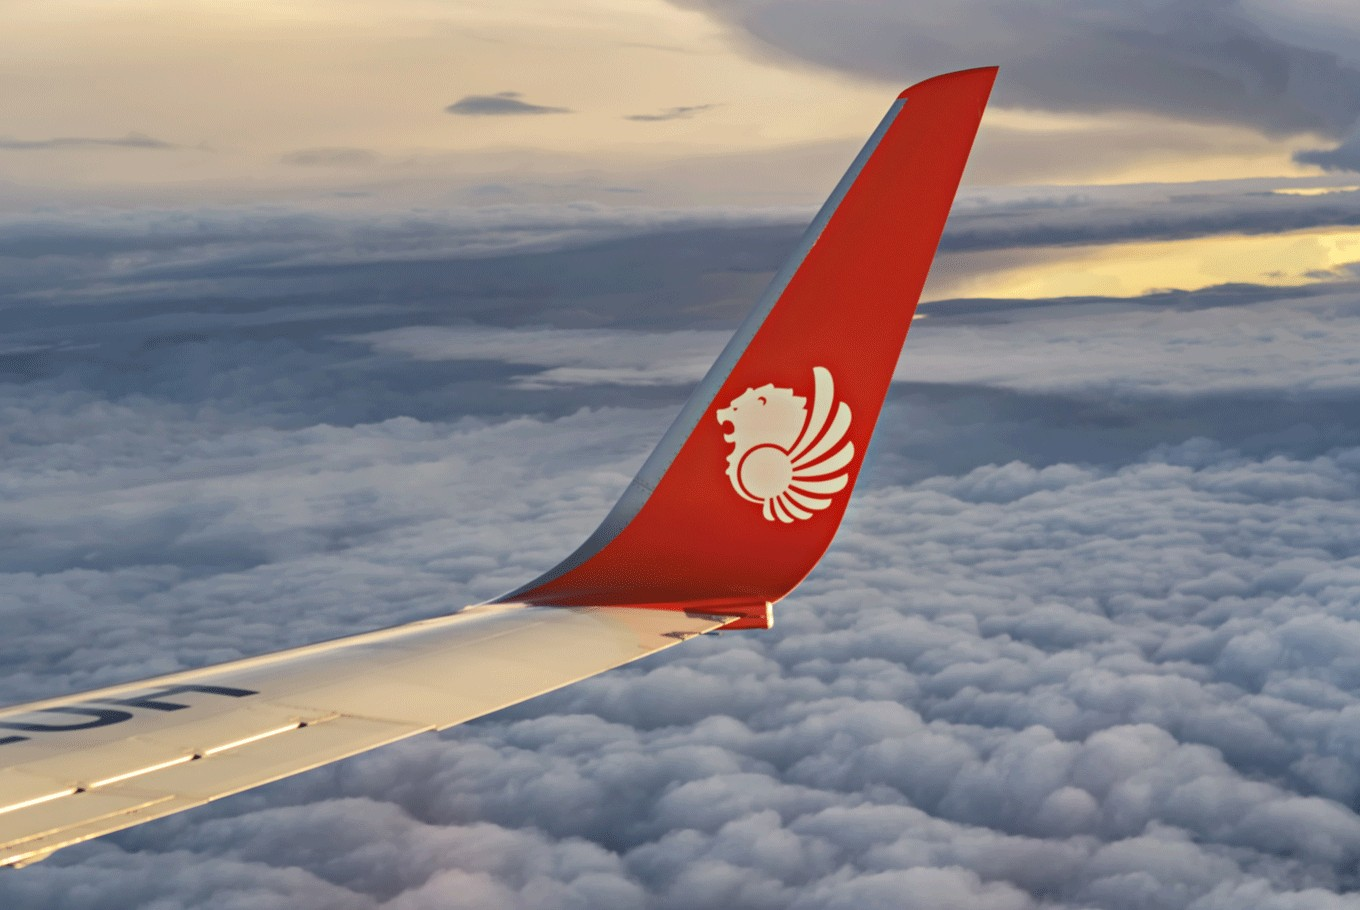 Mile-high maternity: Woman gives birth aboard Lion Air flight